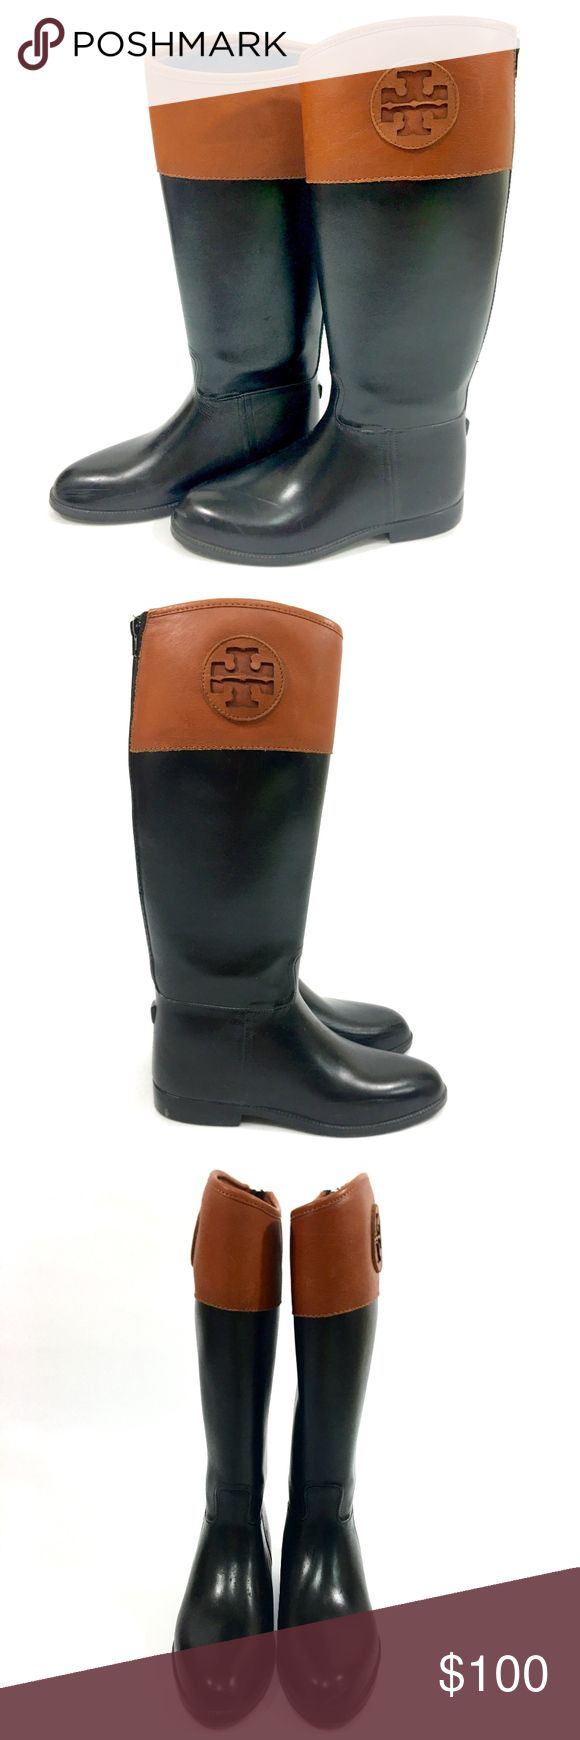 Tory Burch Equestrian Leather Rubber Rain Boots Tory Burch Equestrian Leather Rubber Rain Boots Color: Leather and Black Material: Rubber and Leather  Size: Women's 9, True to size.  Details: Good preowned condition. Minor Markings on rubber. No holes or tear. No stains. Please examine photos and ask questions before purchasing. Thanks! Tory Burch Shoes Winter & Rain Boots